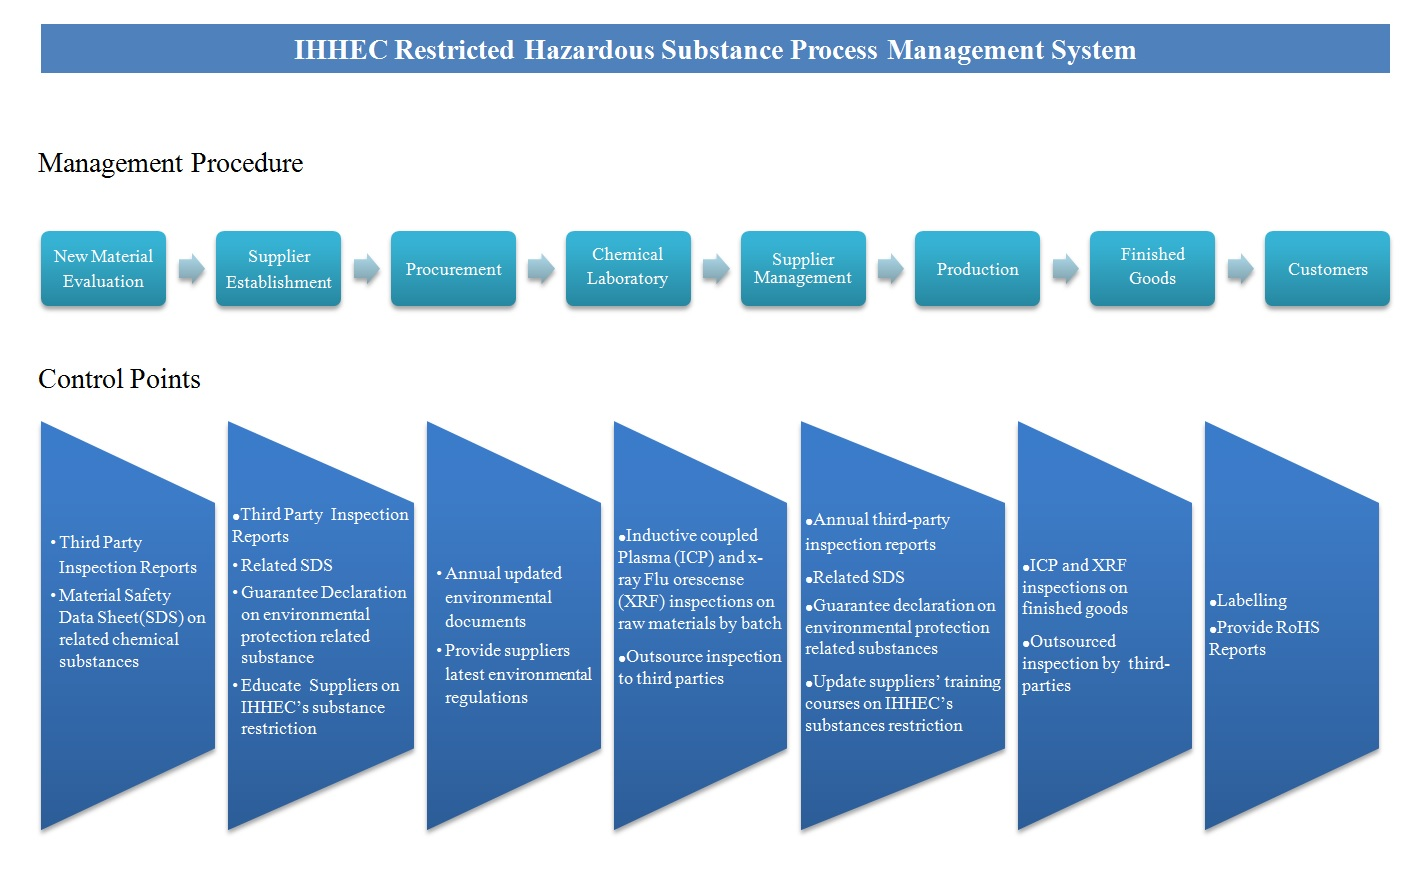 IHHEC Restricted Hazardous Substances Process Management System